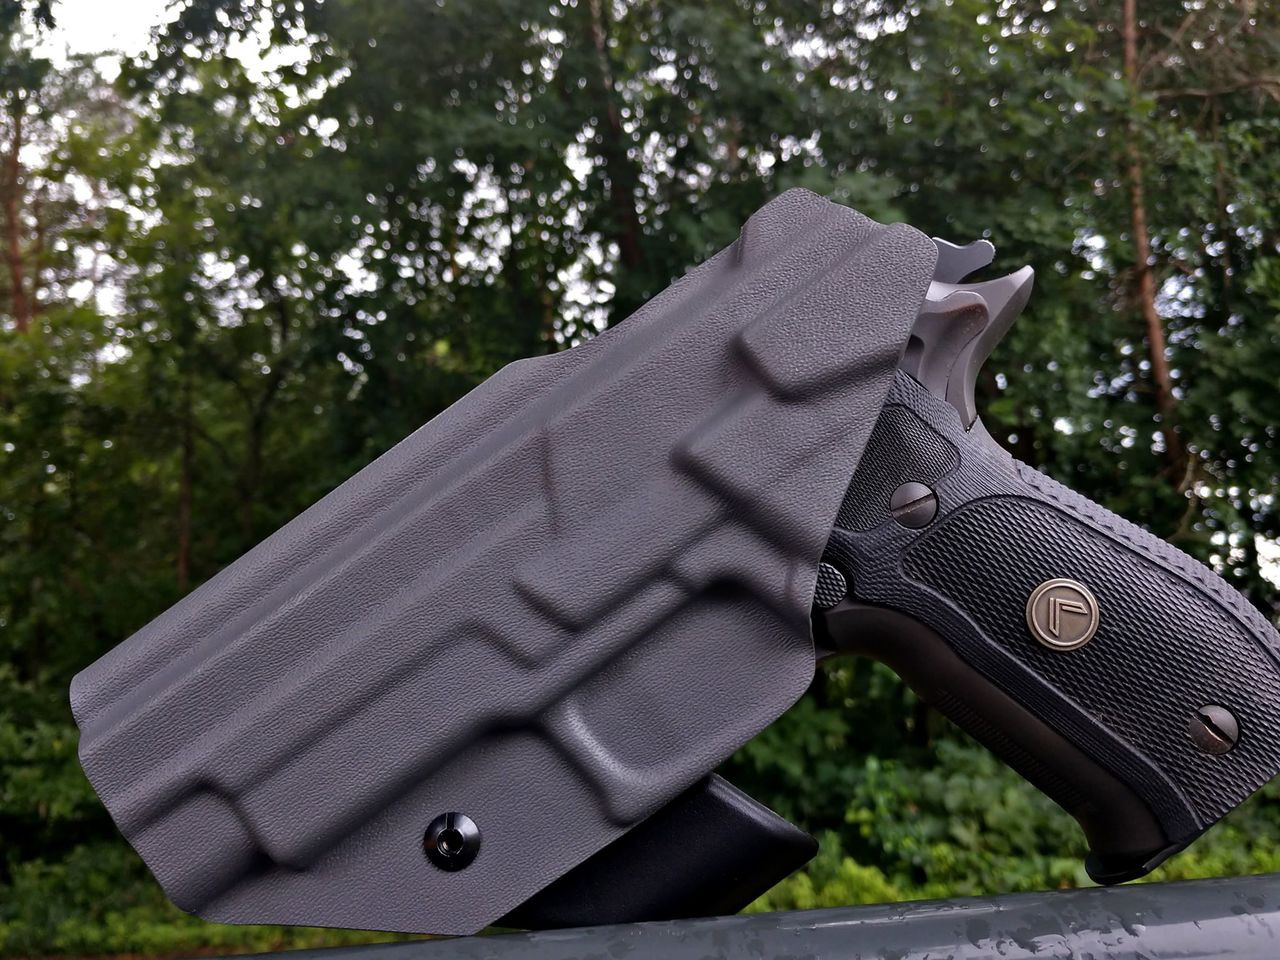 Sig P226 Legion SAO Appendix Carry Holster